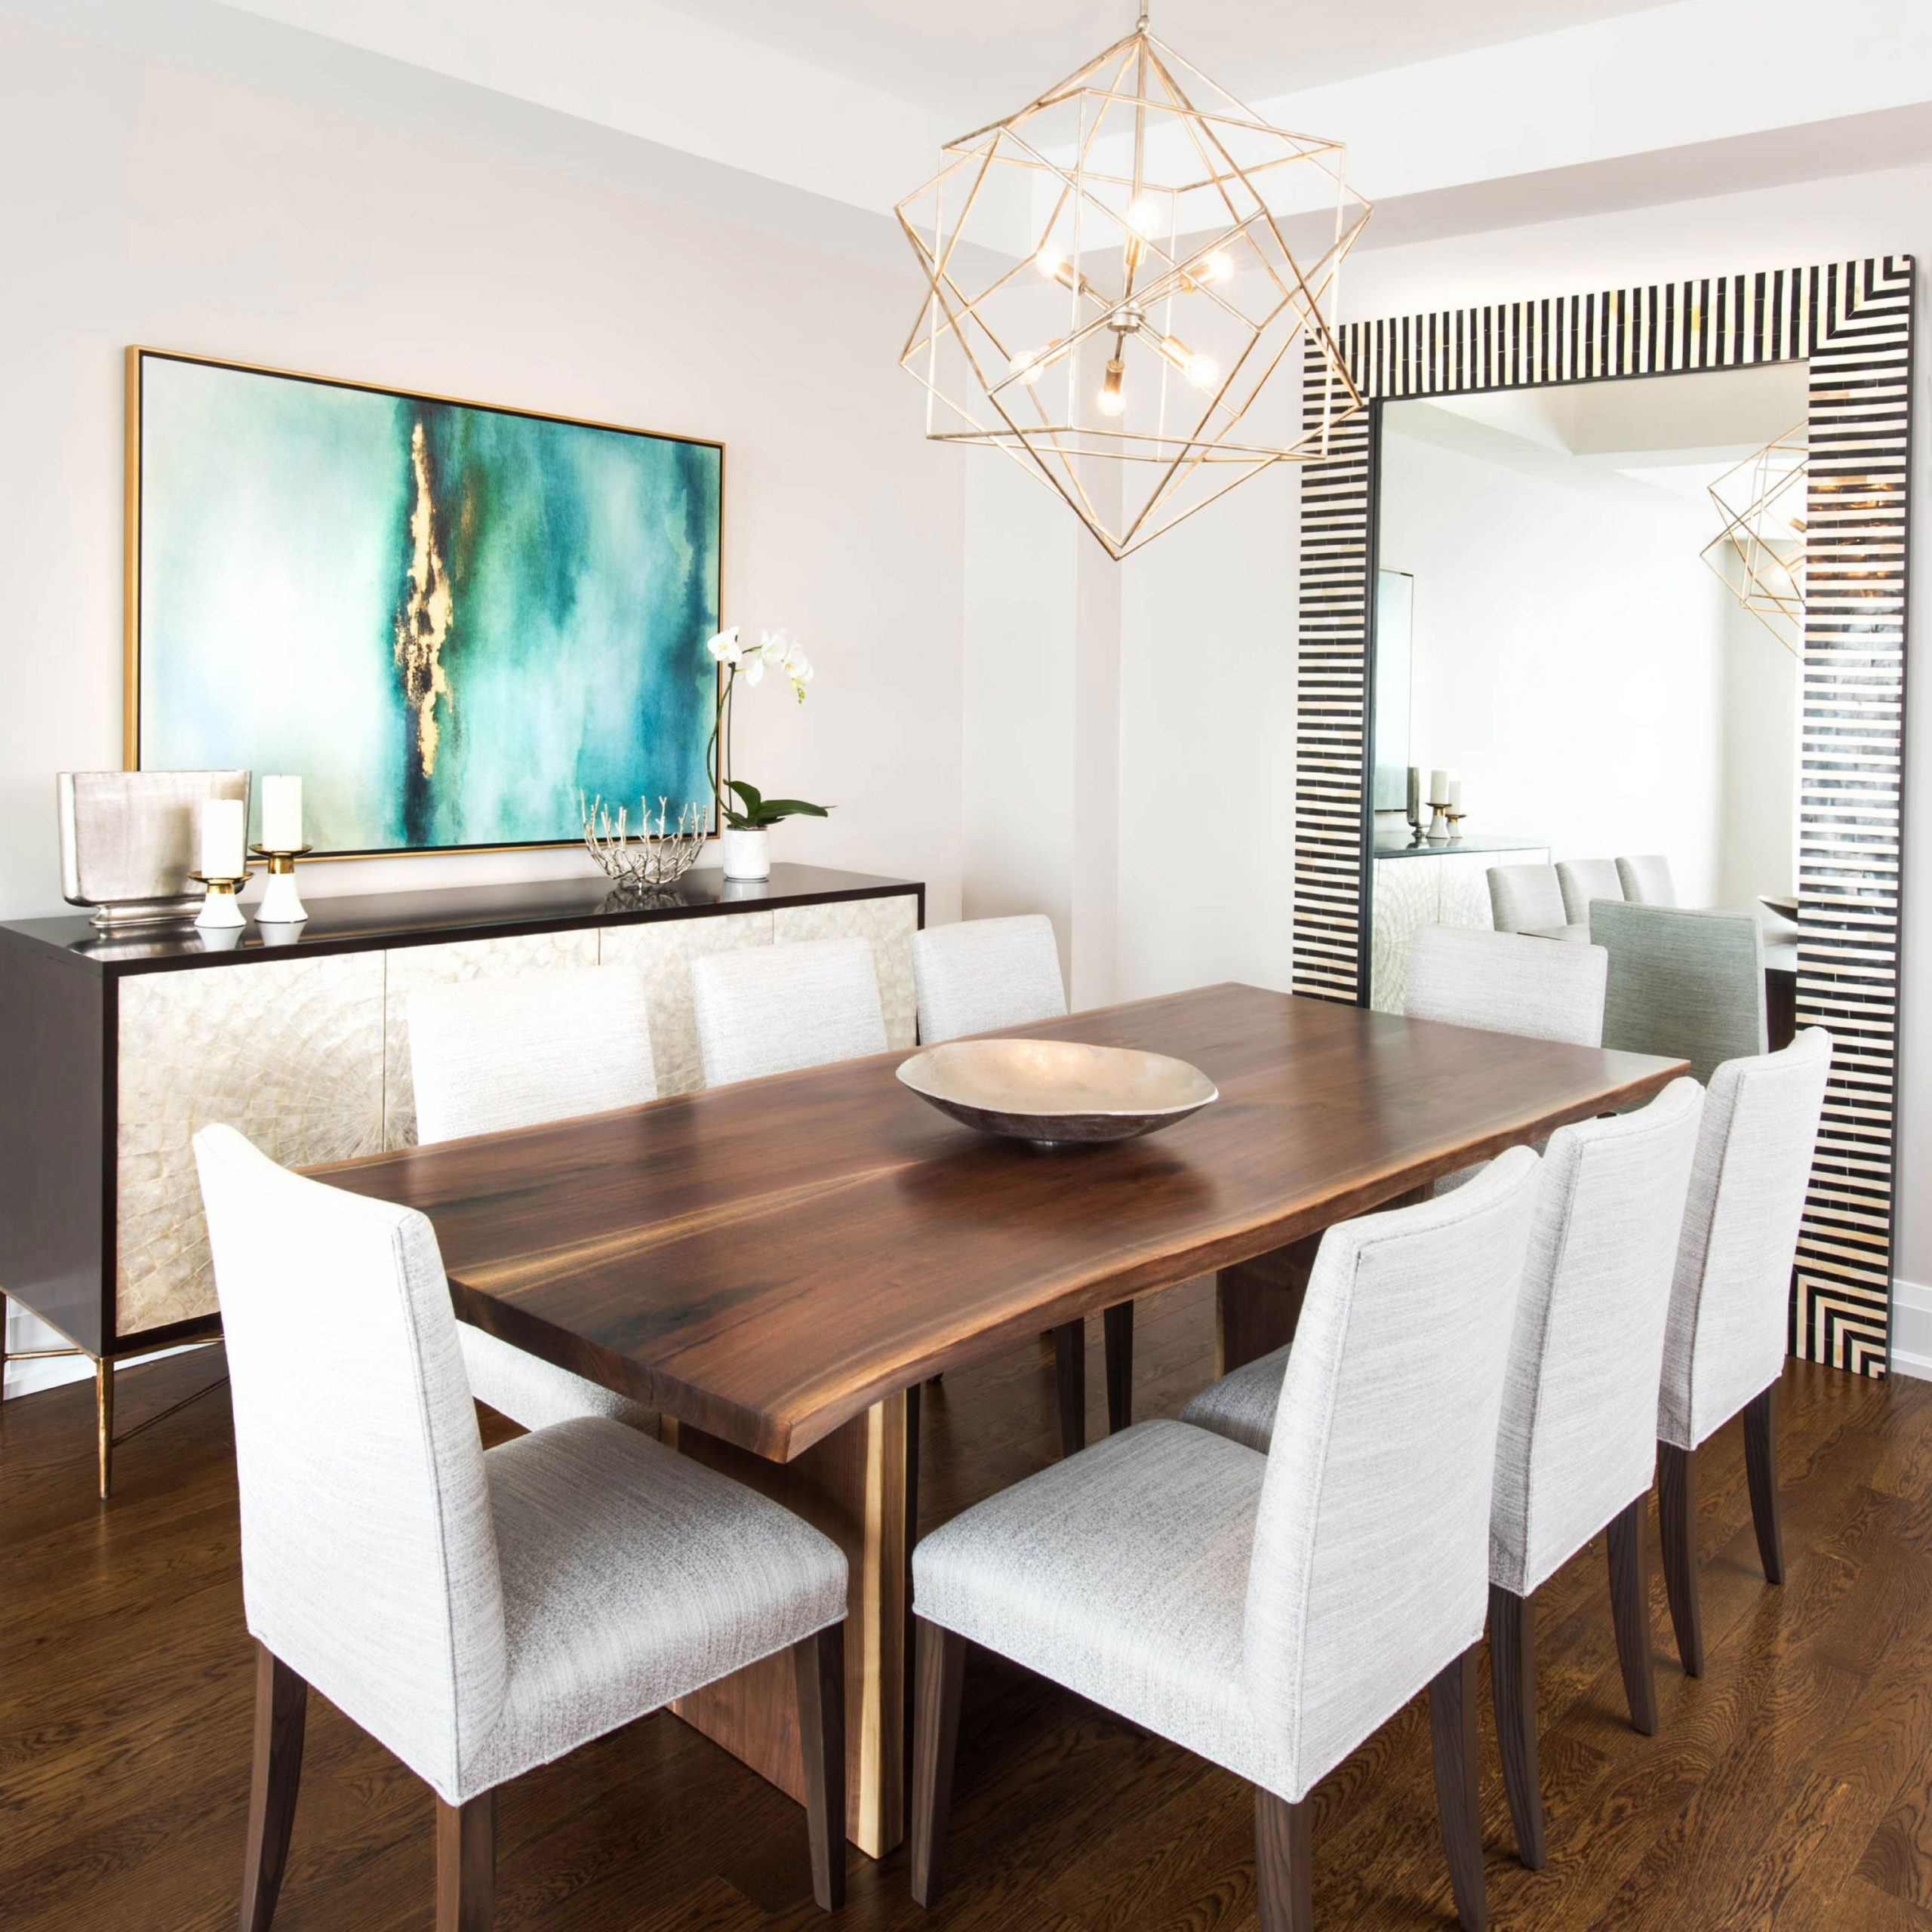 Favorite Walnut And Antique White Finish Contemporary Country Dining Tables Regarding Stunning Black Walnut Dining Tableroca Woodworks (View 13 of 25)